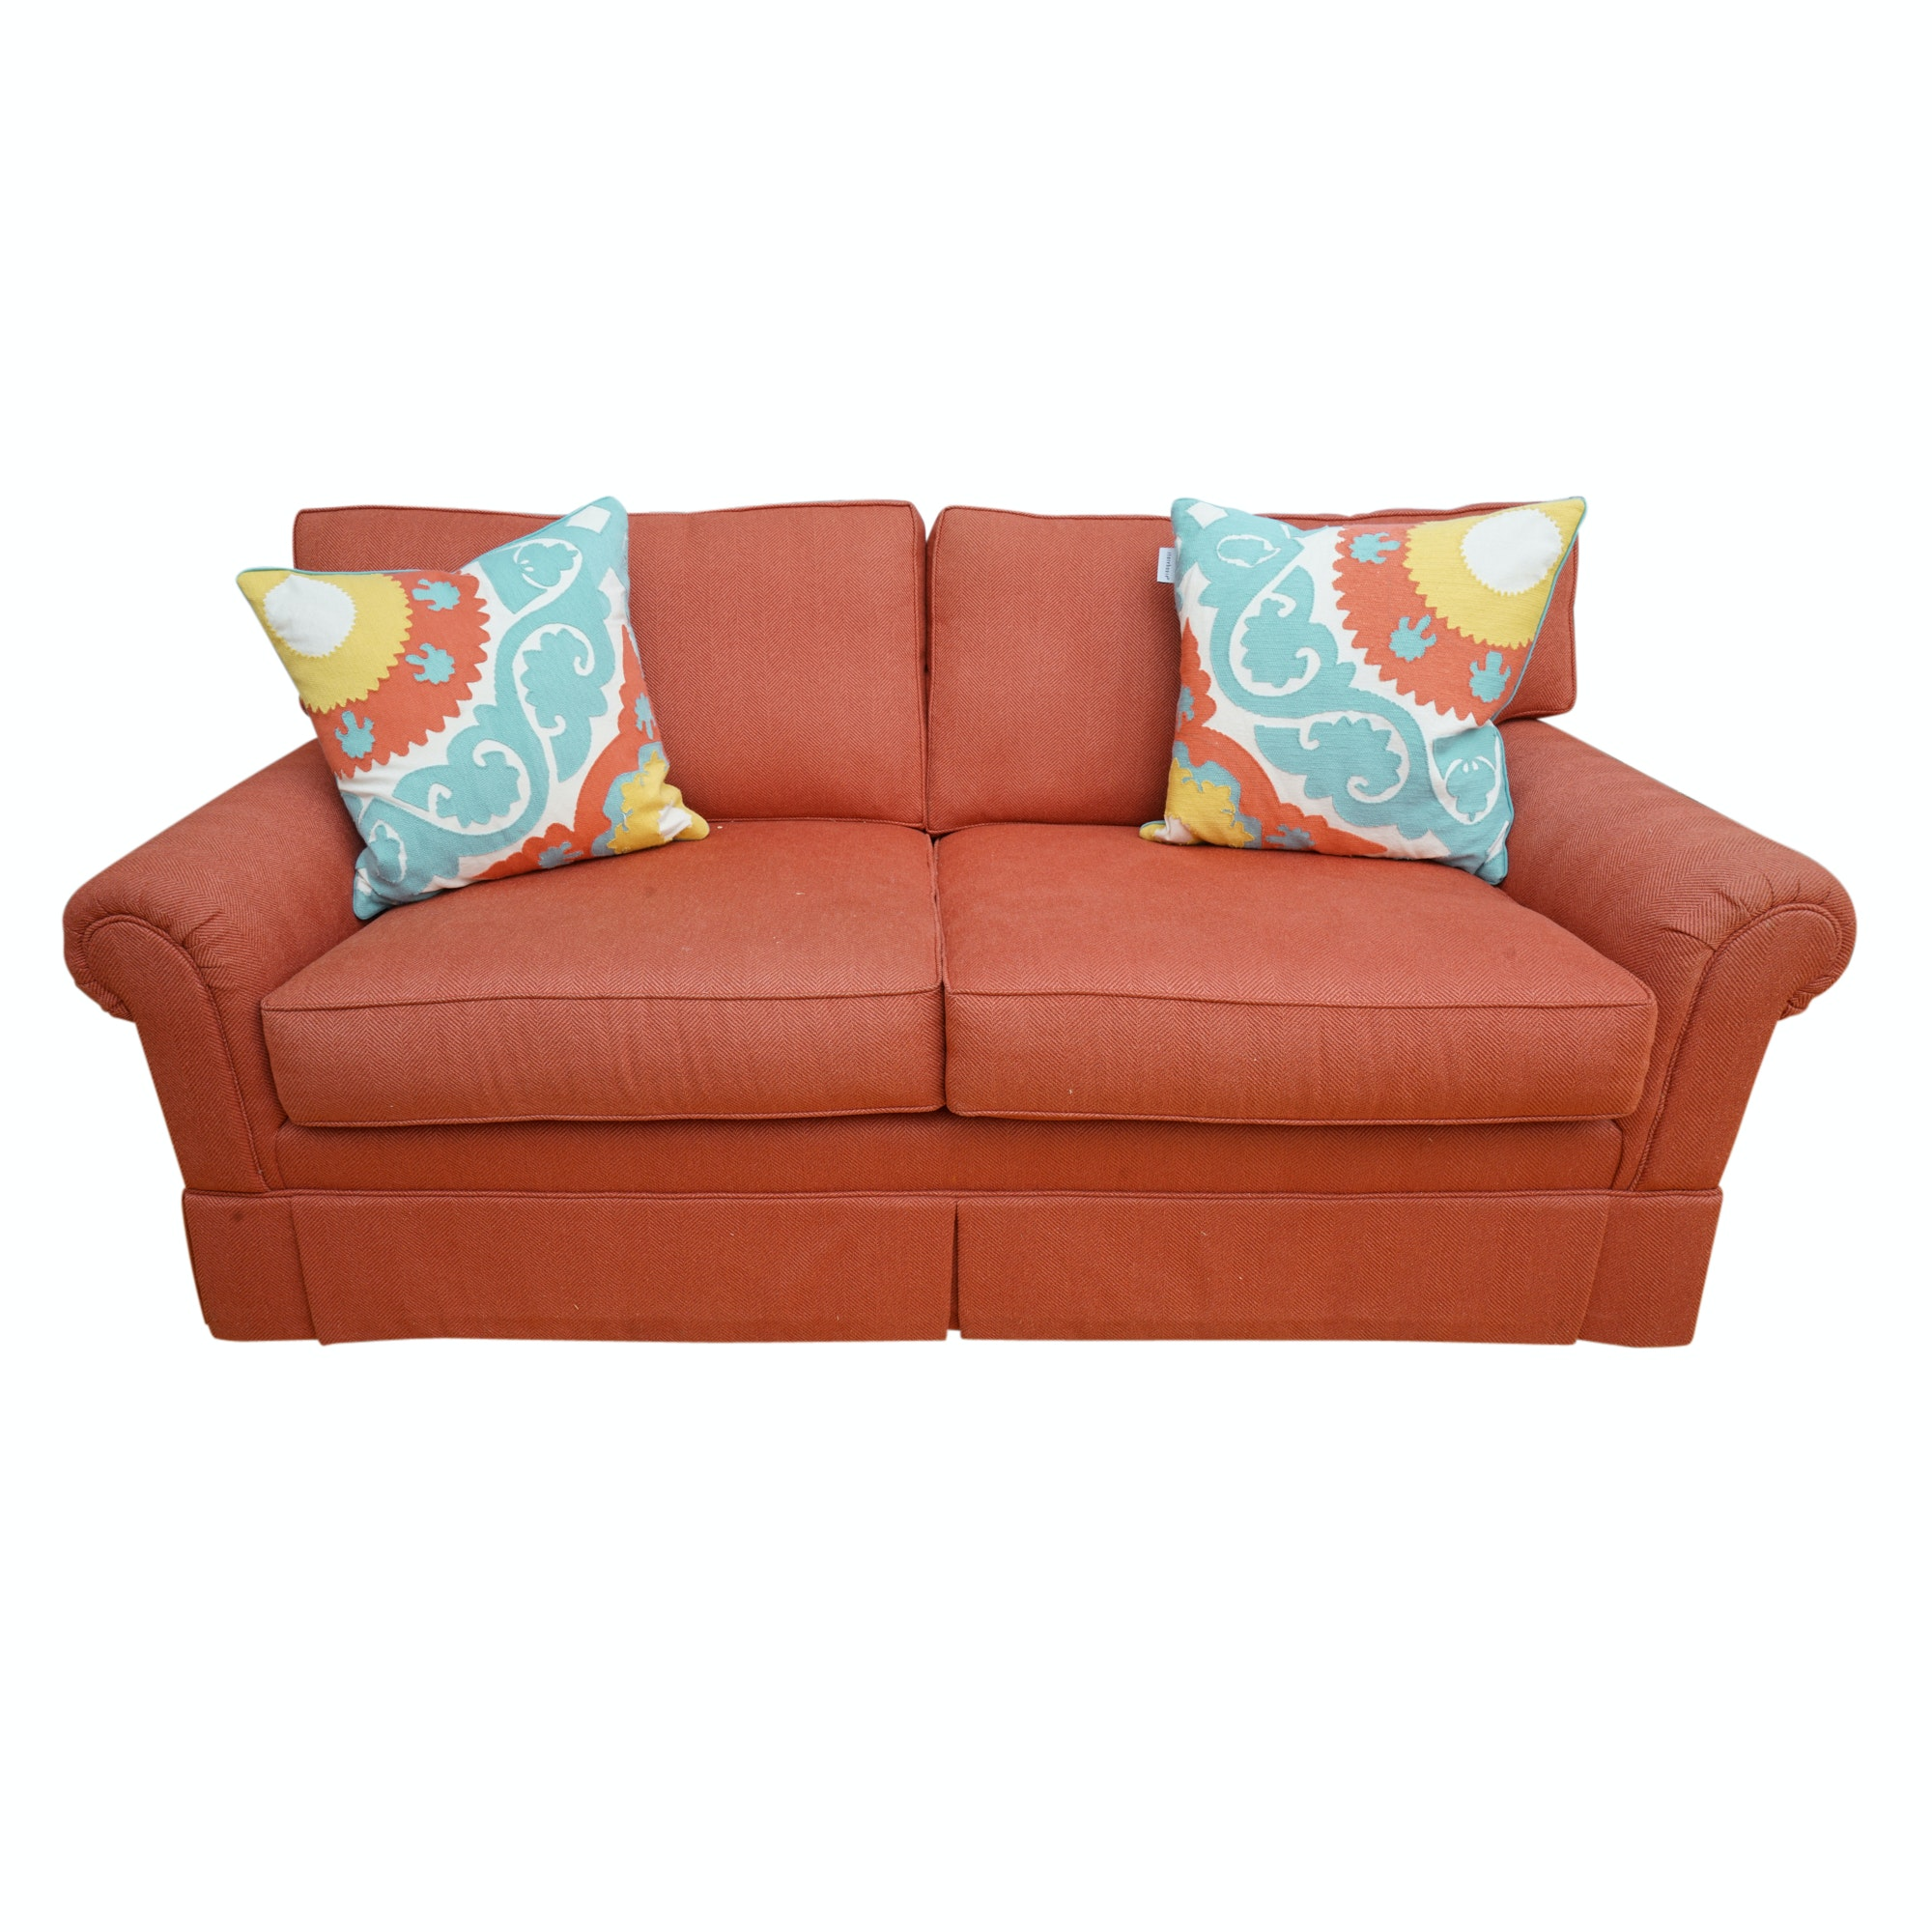 Contemporary Upholstered Sofa by Pearson